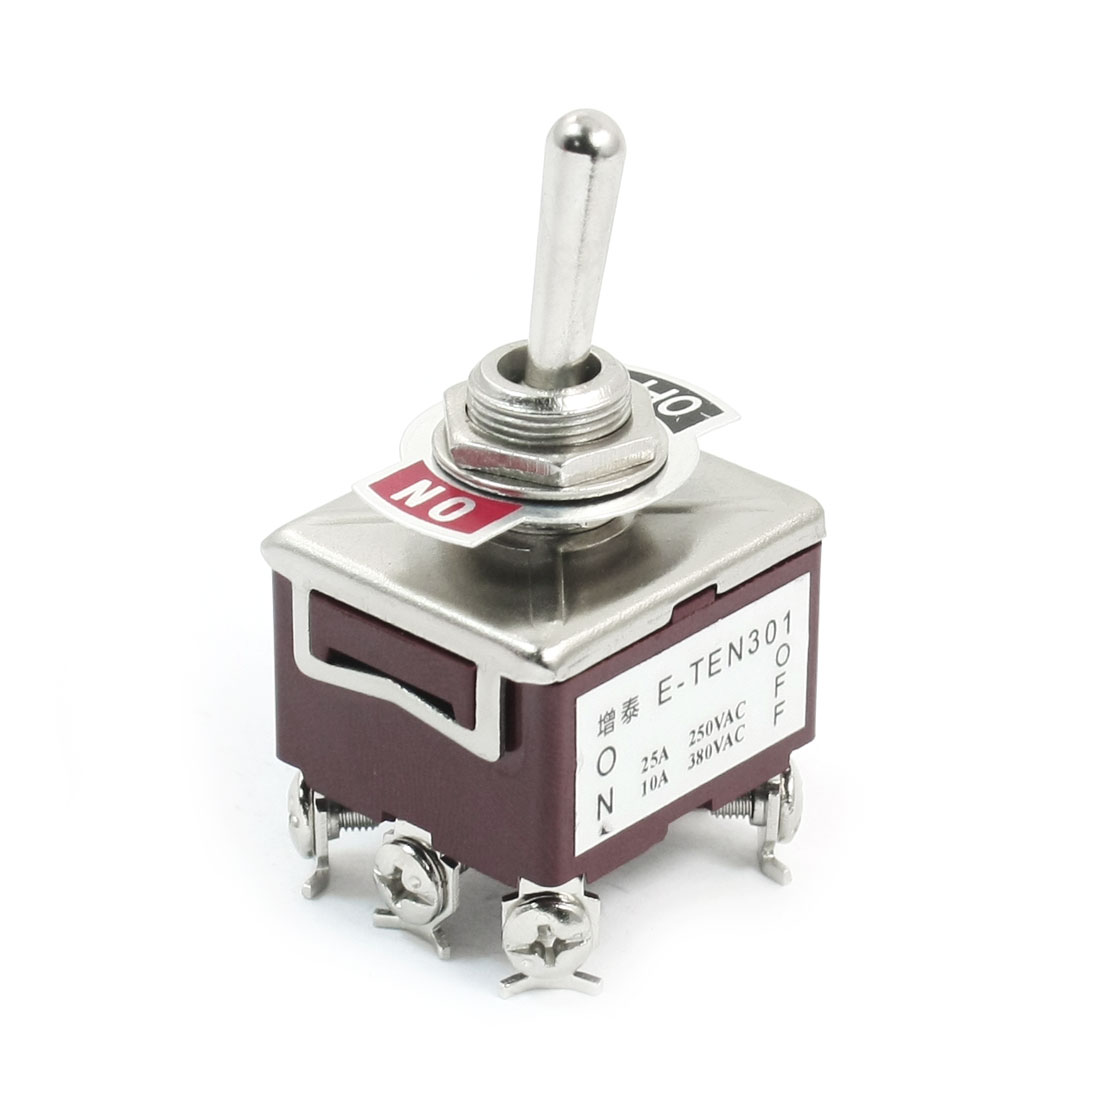 AC250V/25A AC380V/10A DPST 2 Positions ON/OFF Toggle Switch E-TEN301